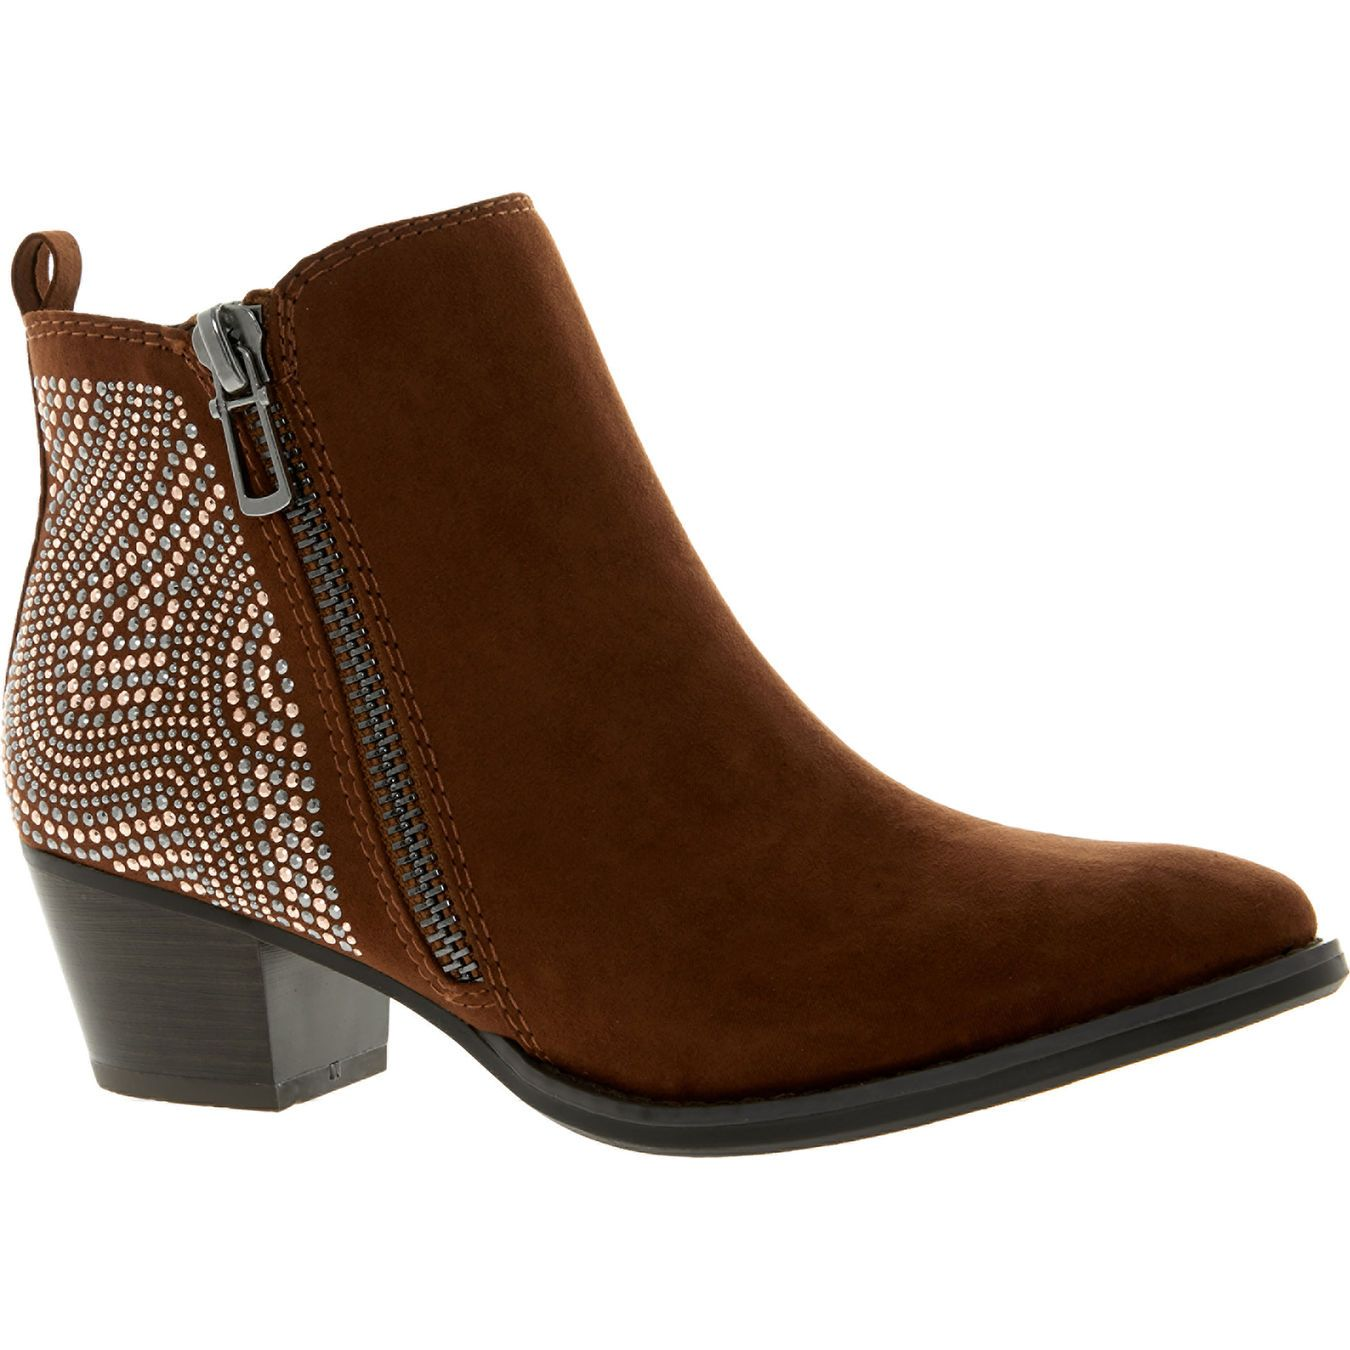 ba2dadb65170b6 Brown Diamante Ankle Boots - Ankle Boots - Boots - Shoes - Women - TK Maxx